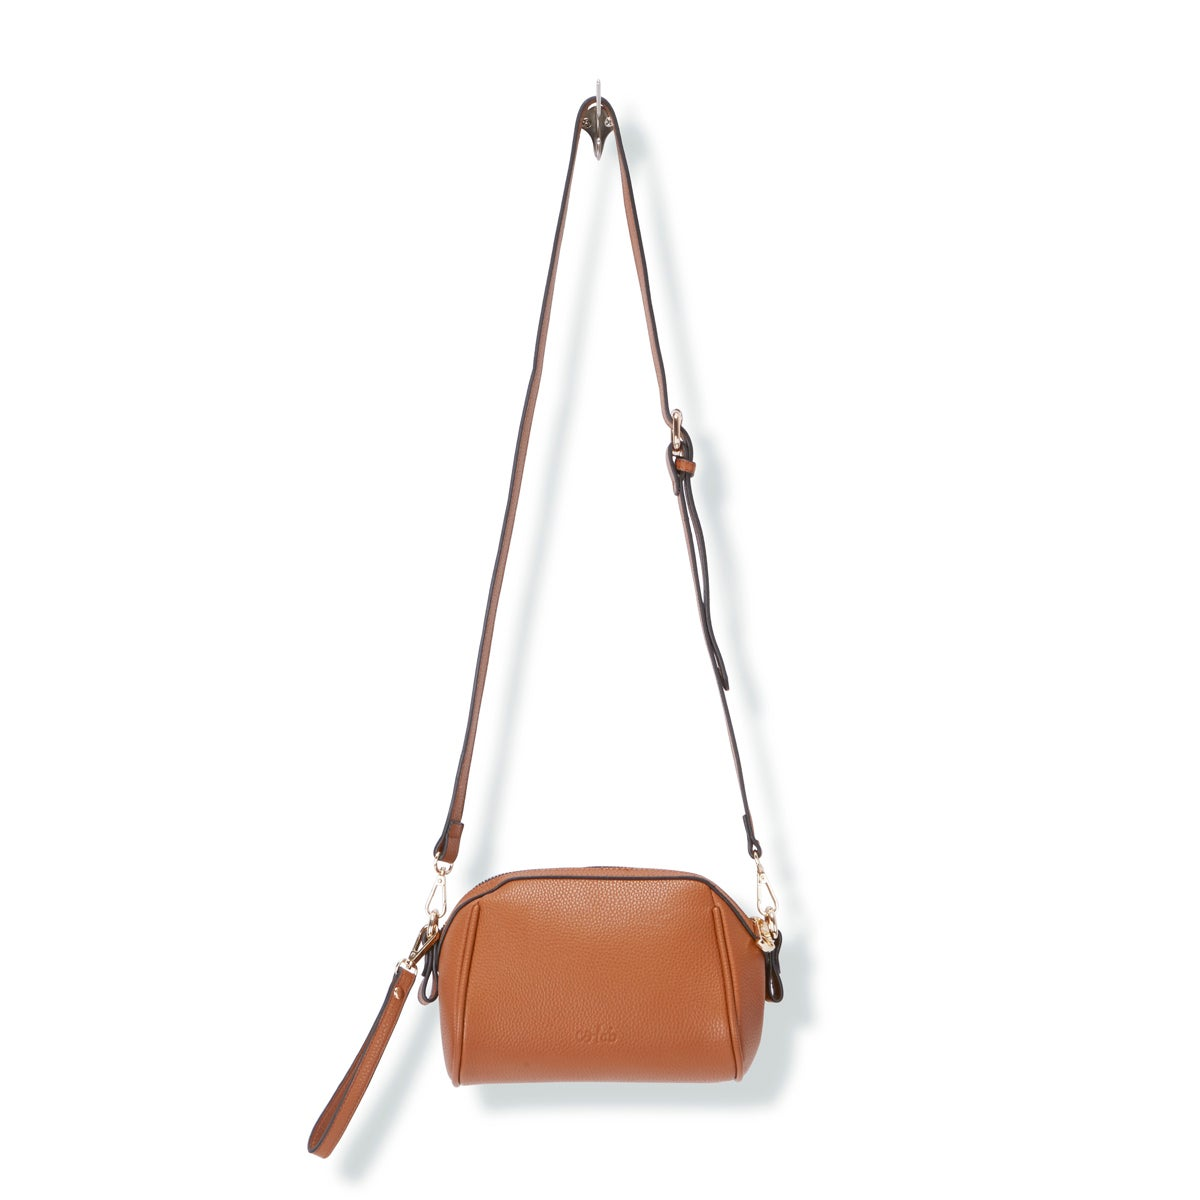 Lds The Bucket cognac cross body bag